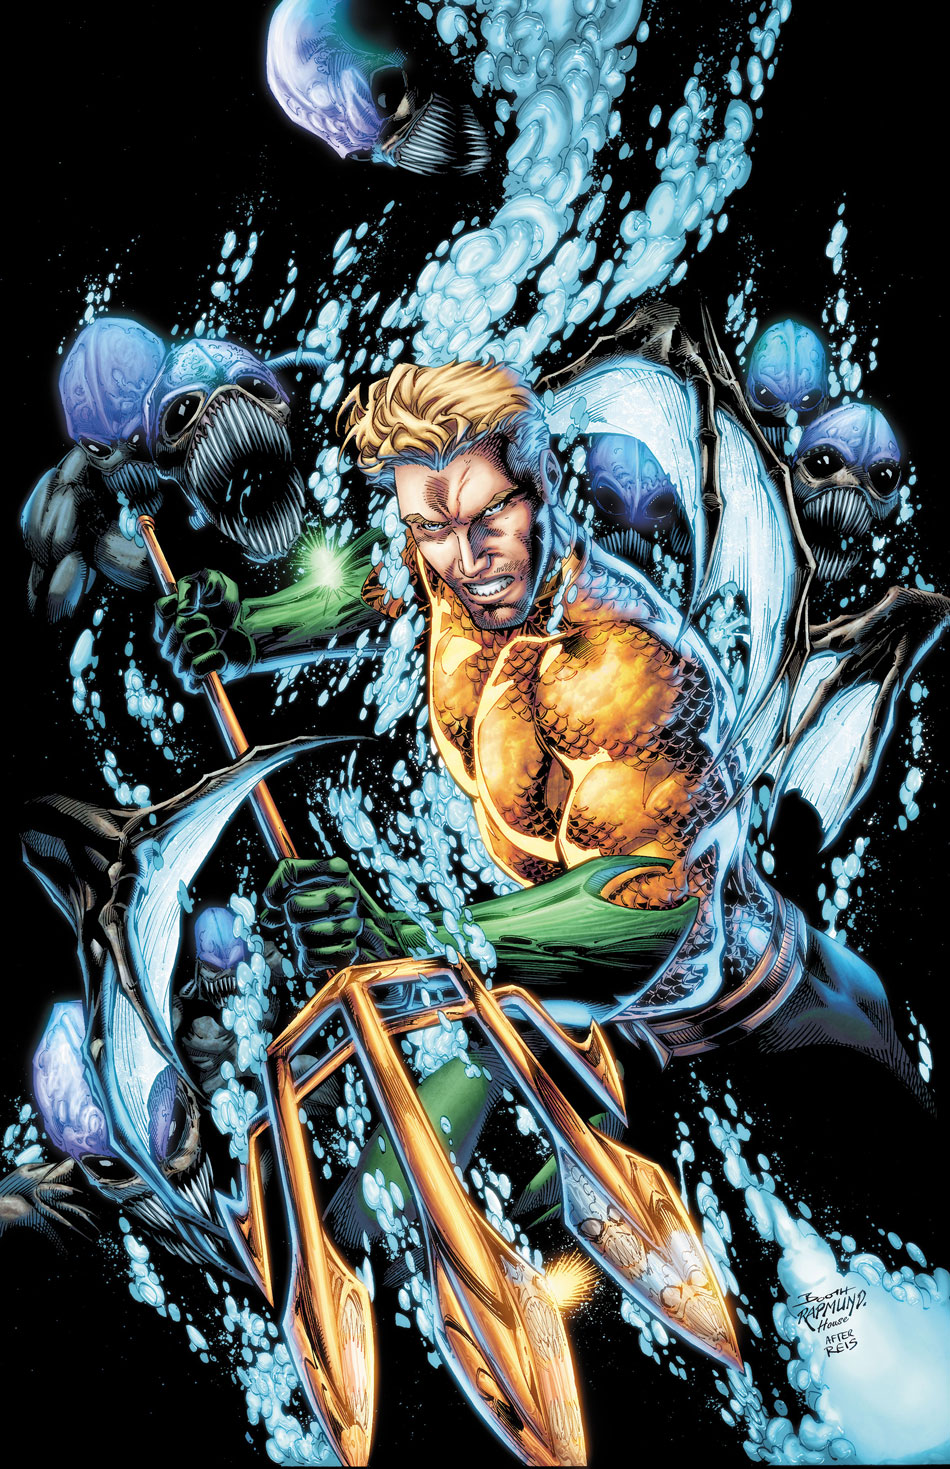 Aquaman #52 variant cover by Brett Booth and Norm Rapmund